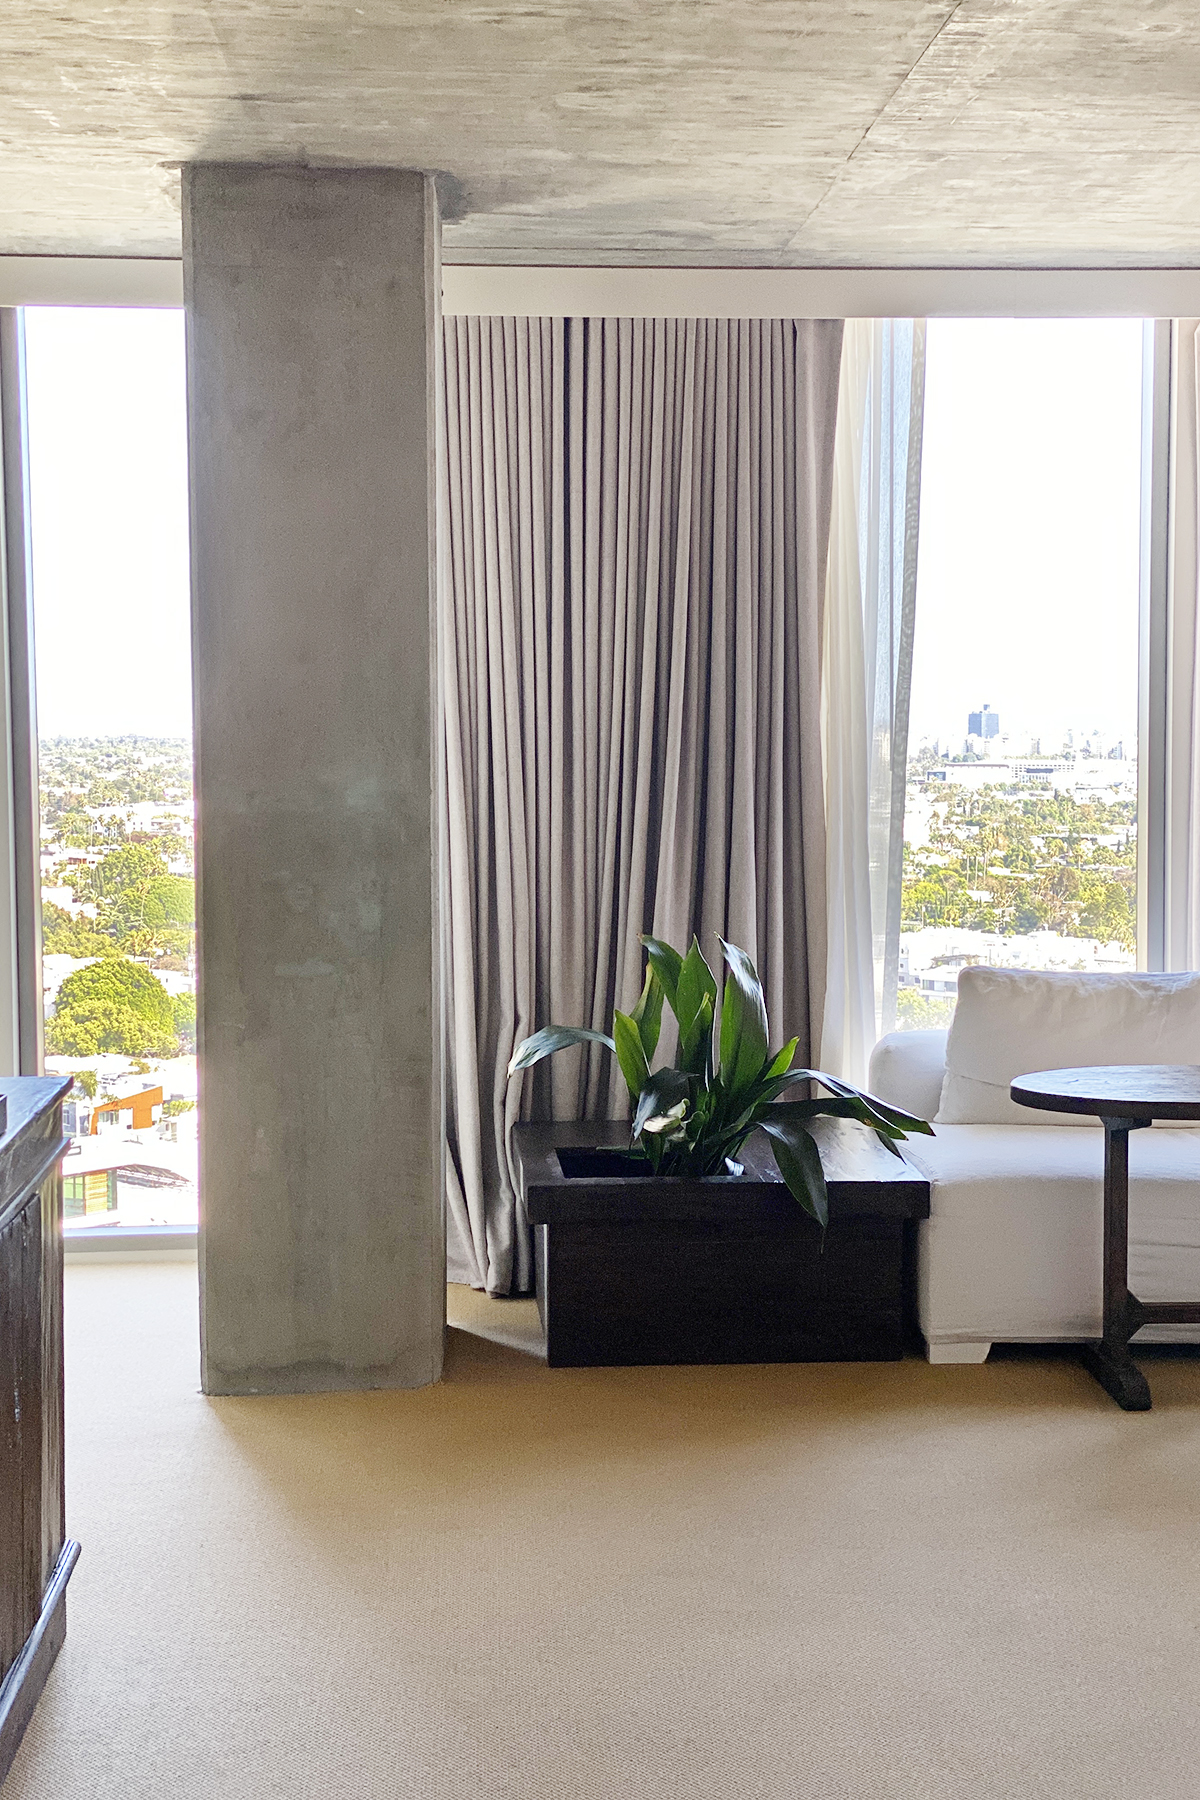 1 hotel west hollywood review